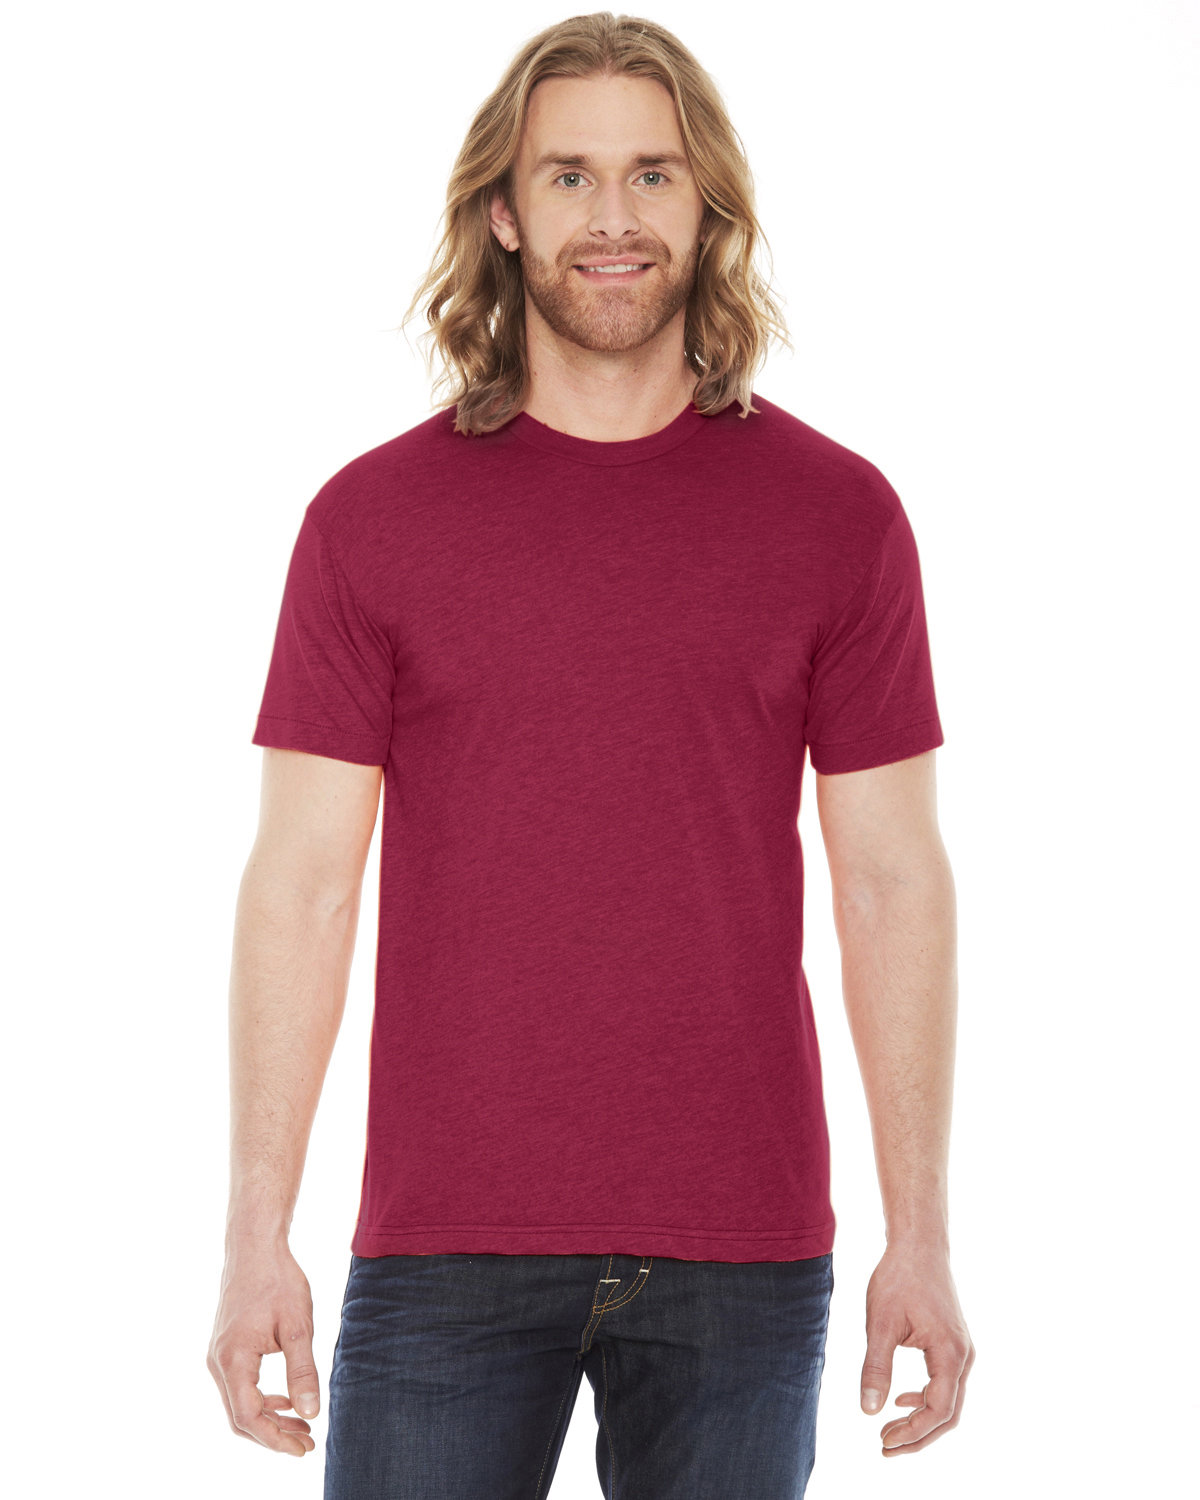 American Apparel Unisex Classic T-Shirt HEATHER RED